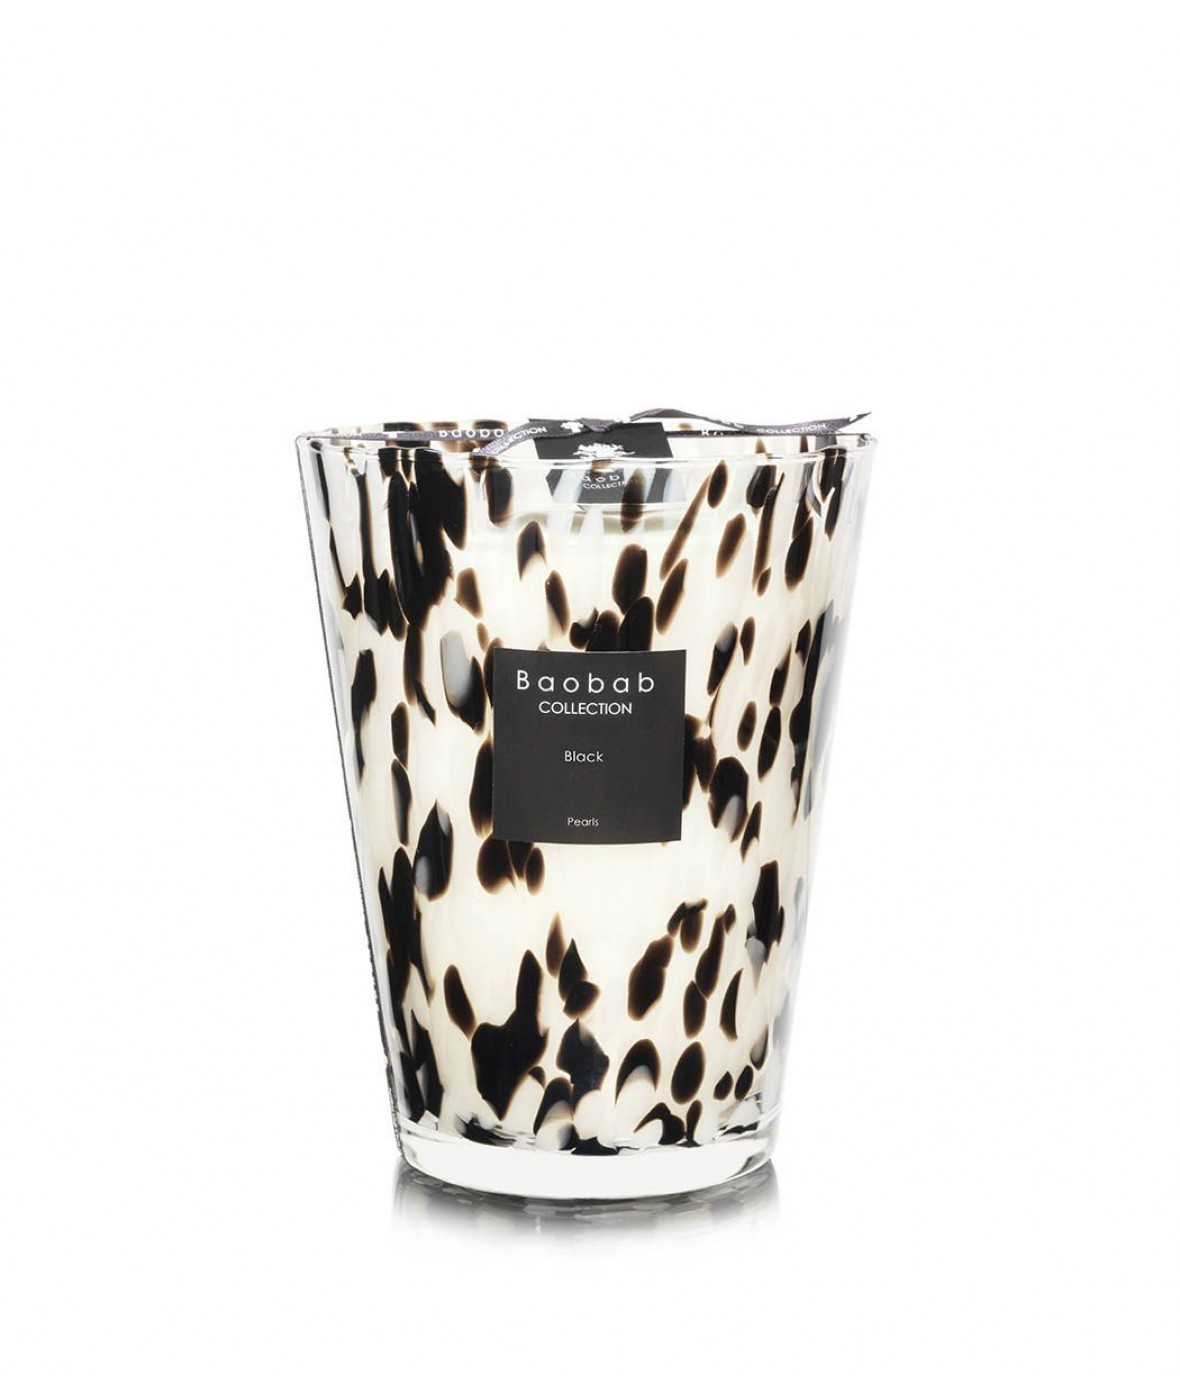 Baobap Scented Candle Black Pearls (Extra Large)